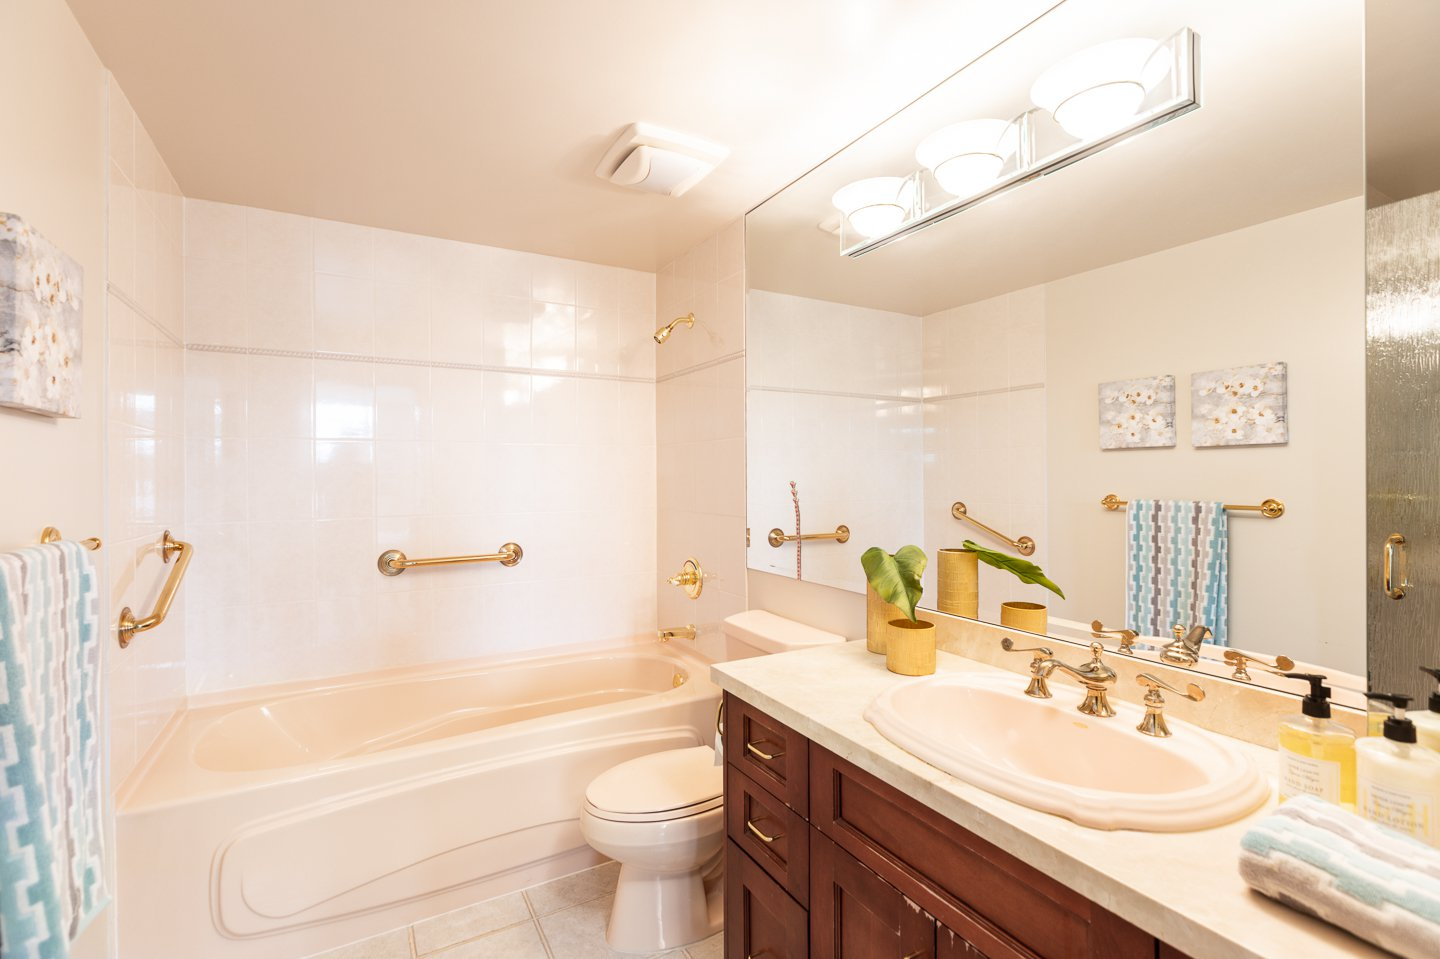 Photo 14: Photos: 401-2580 TOLMIE ST in VANCOUVER: Point Grey Condo for sale (Vancouver West)  : MLS®# R2397003